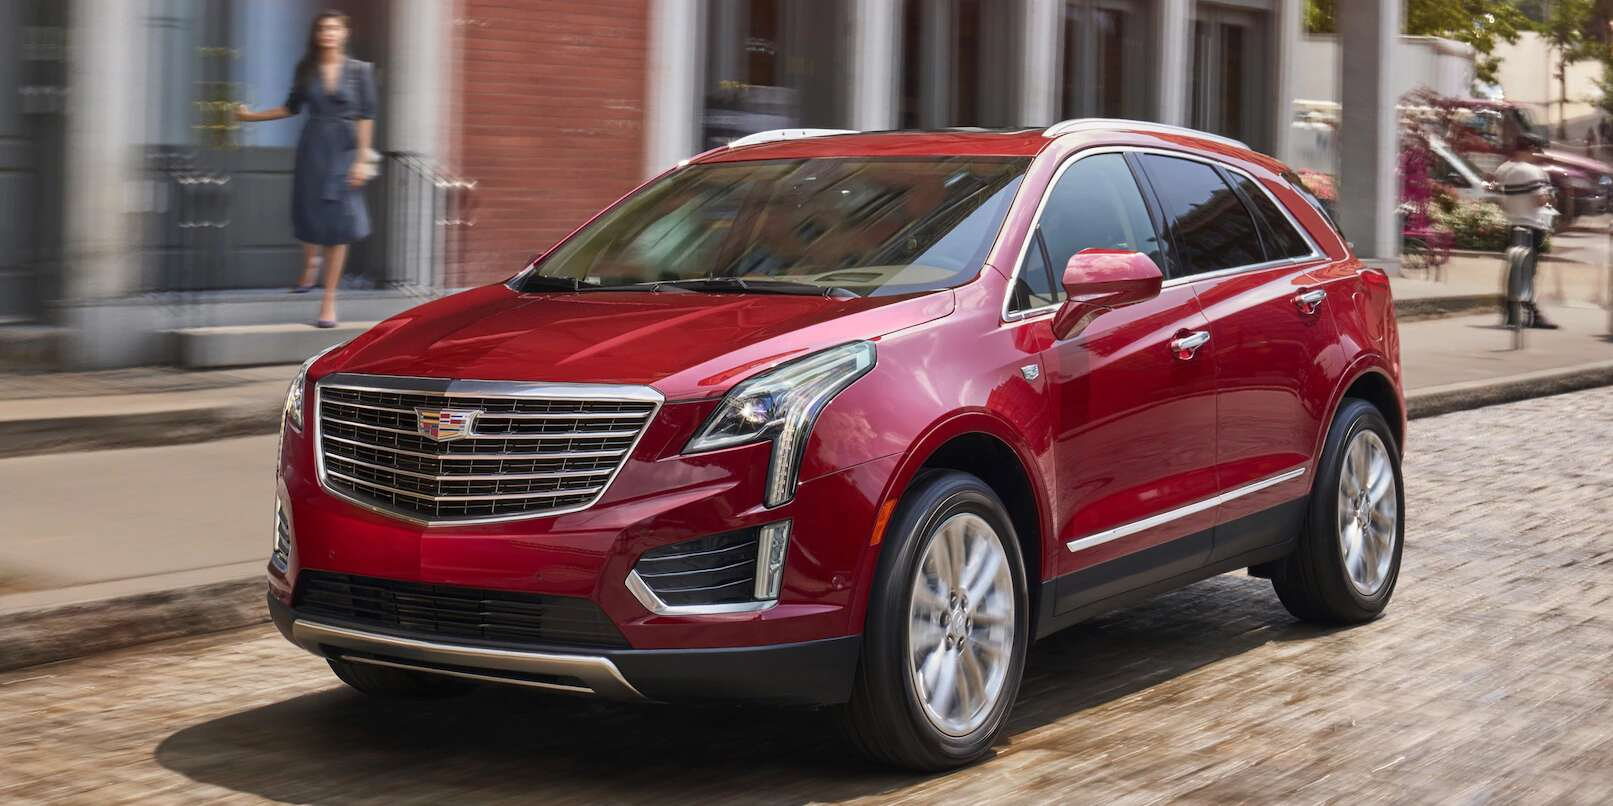 2018 Cadillac Xt5 Test Drive Review Making A Friendlier Crossover